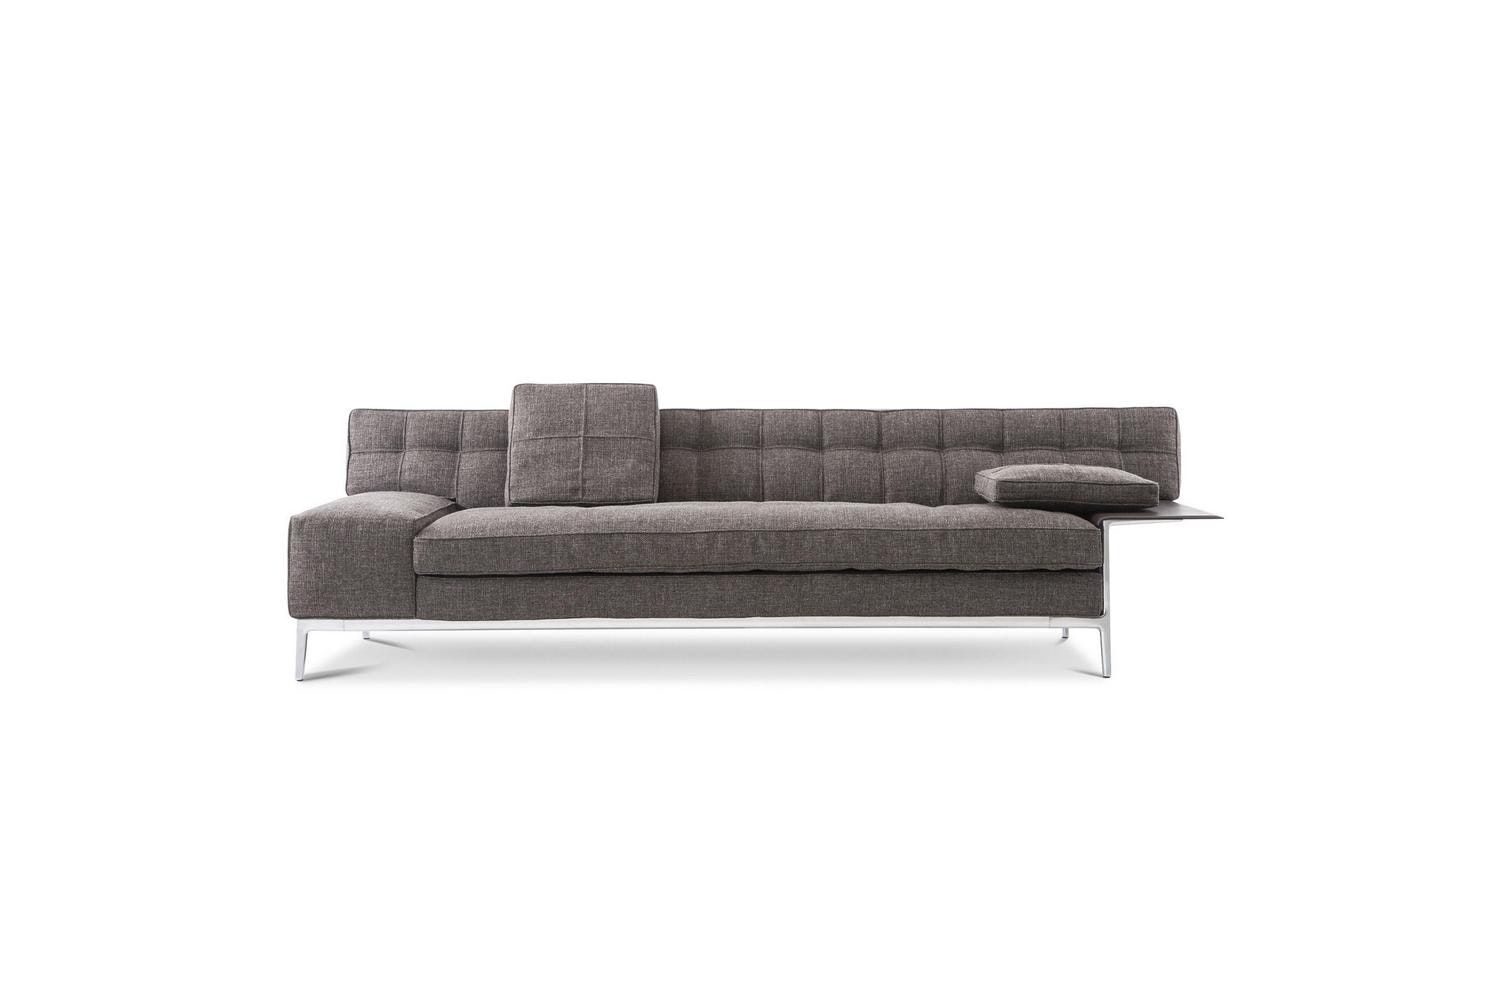 249 Volage EX-S Sofa by Philippe Starck for Cassina